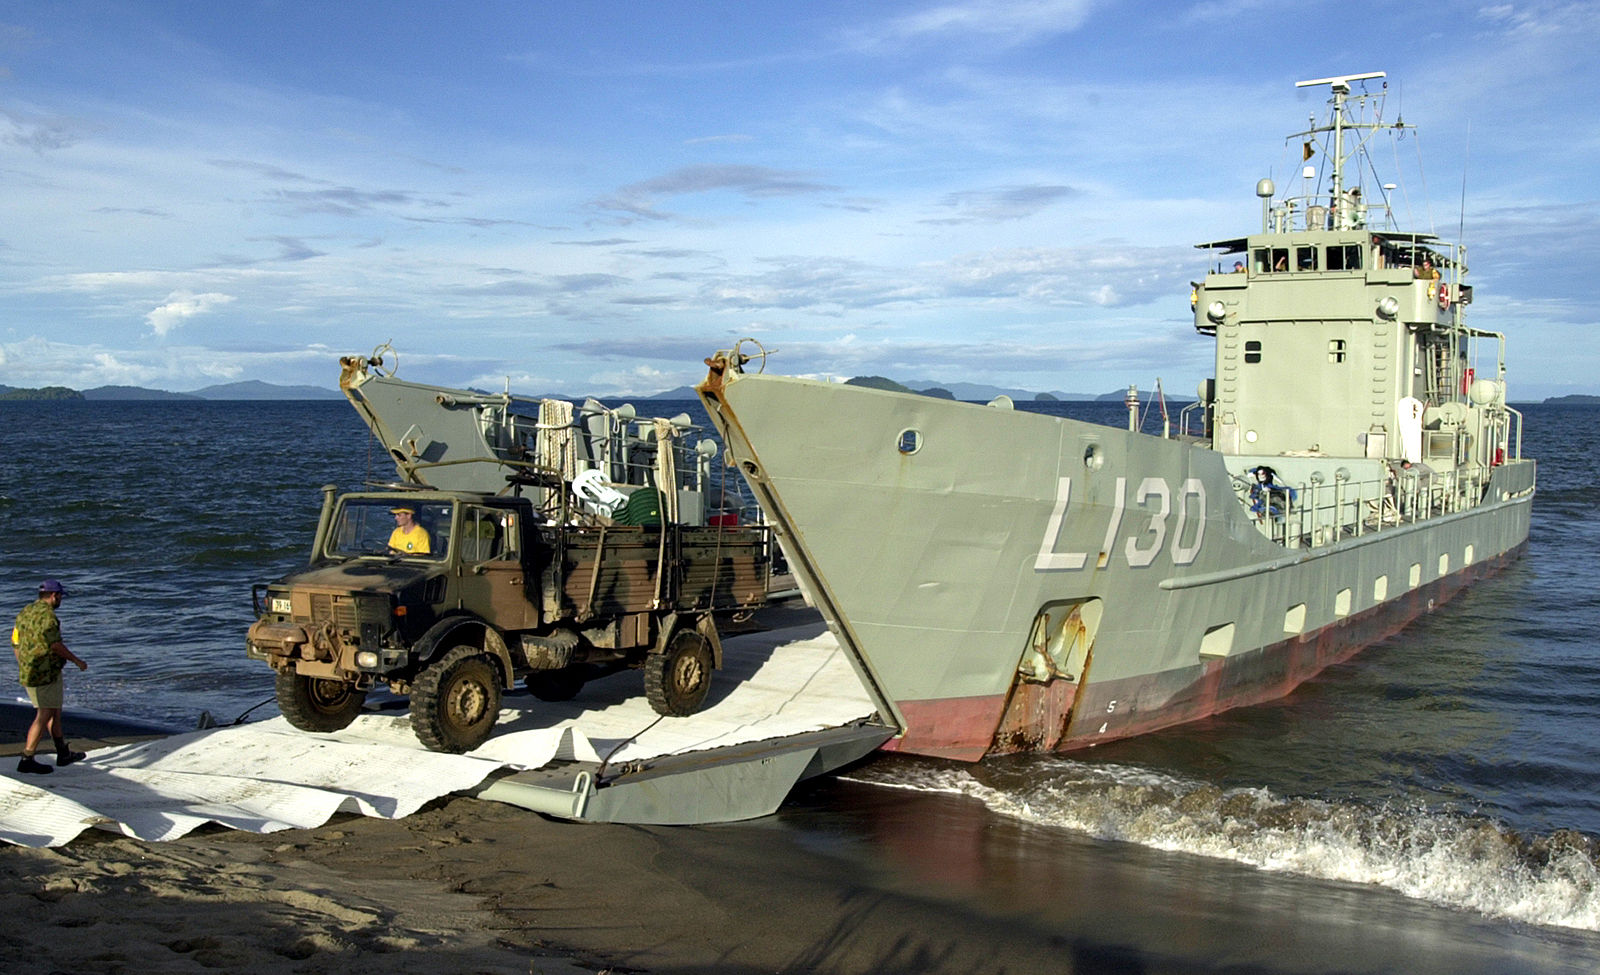 Naval Open Source INTelligence: HMAS Wewak decommissioned